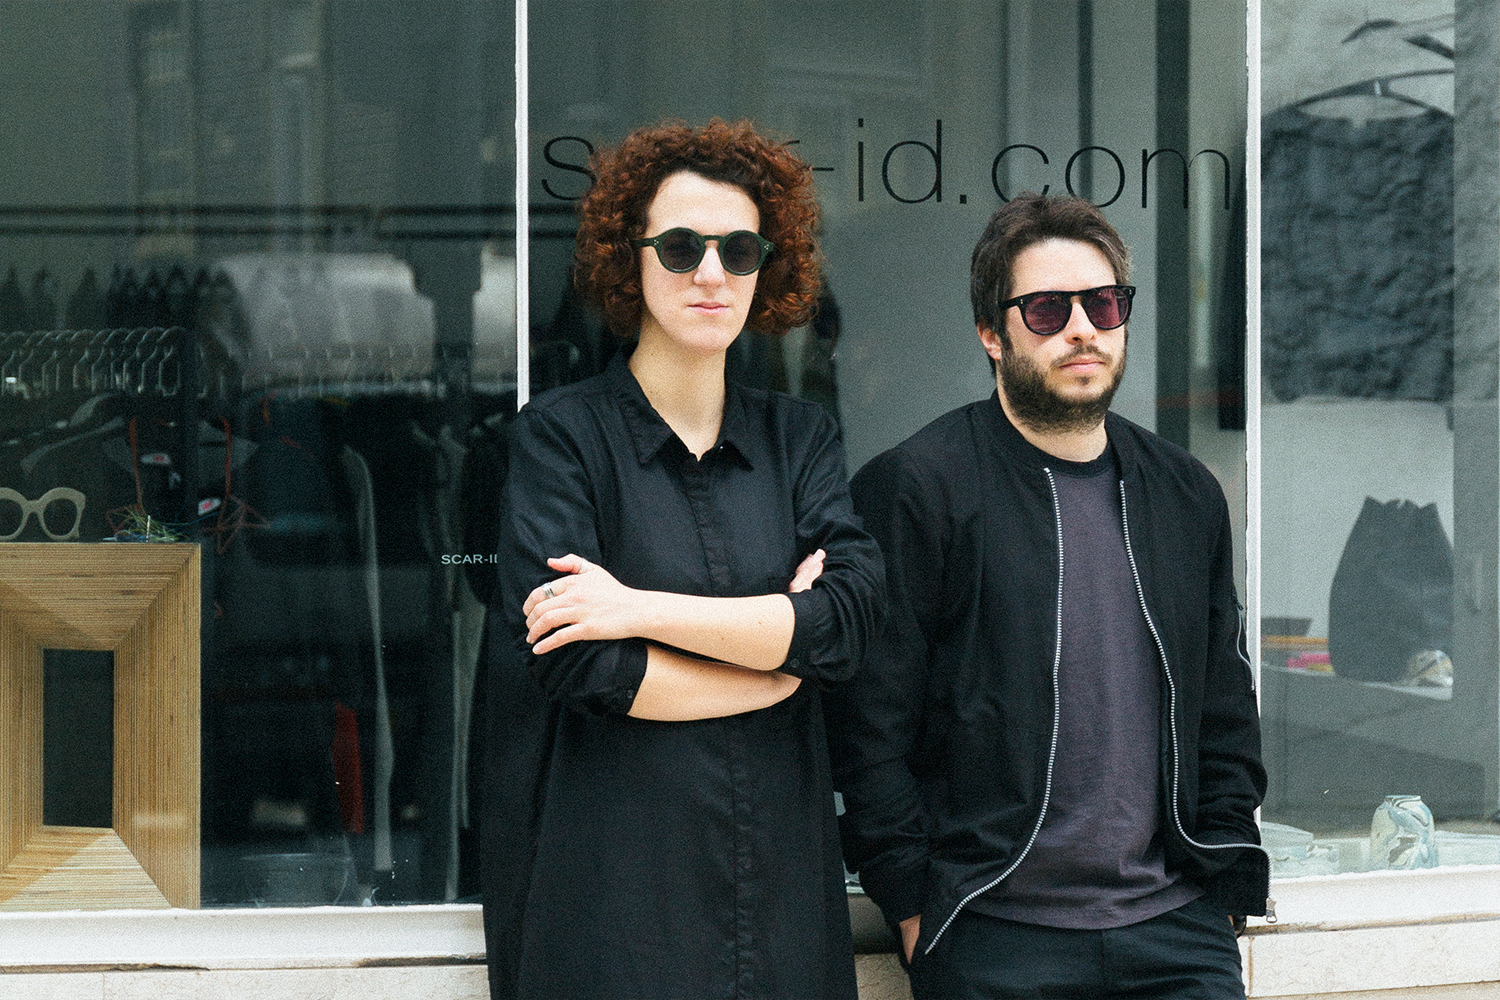 Sílvia Pinto Costa and André Ramos in front of Scar-id Store